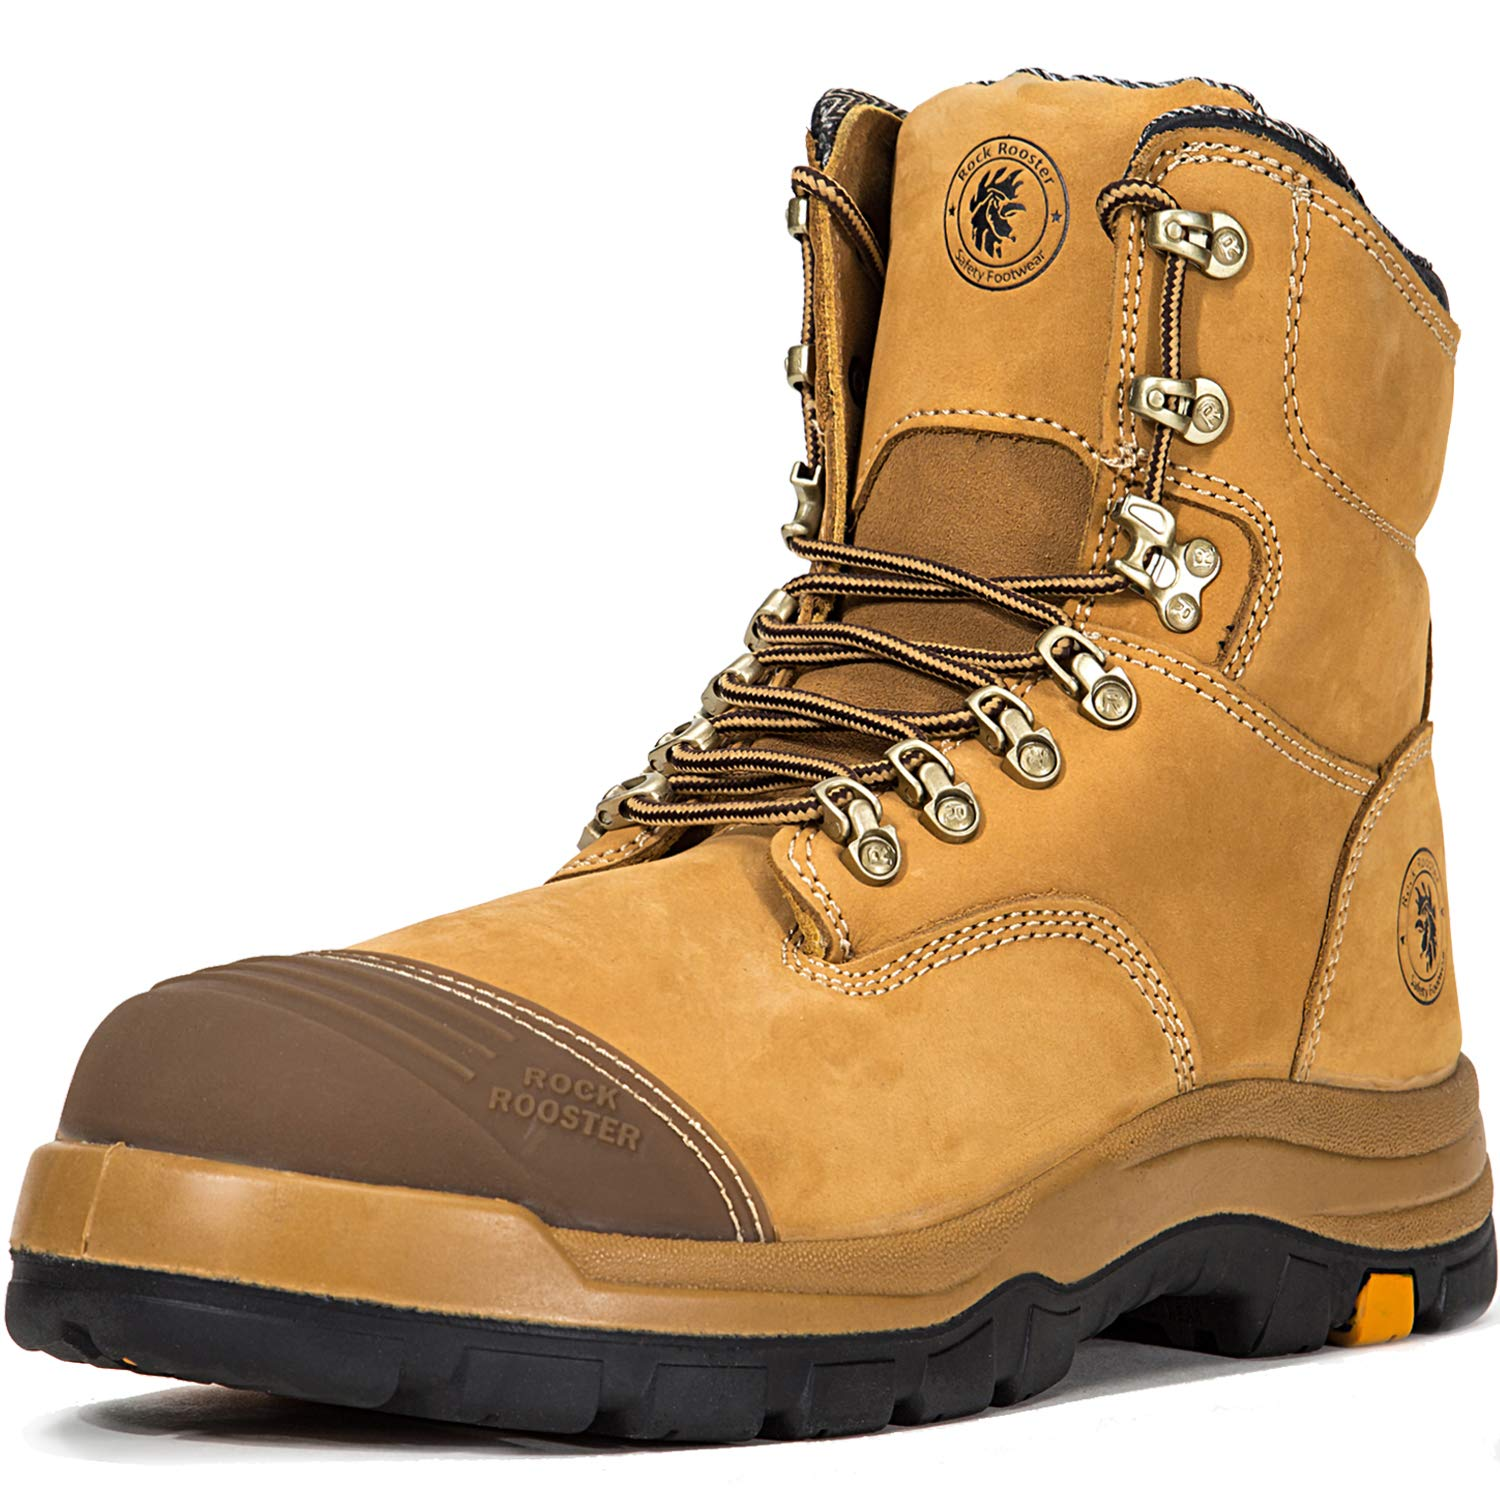 70c8b1566cb ROCKROOSTER Men's Work Boots, Steal Toe, Antistatic, Safety Leather Shoes,  Pull On Water Resistant, AK232, AK245